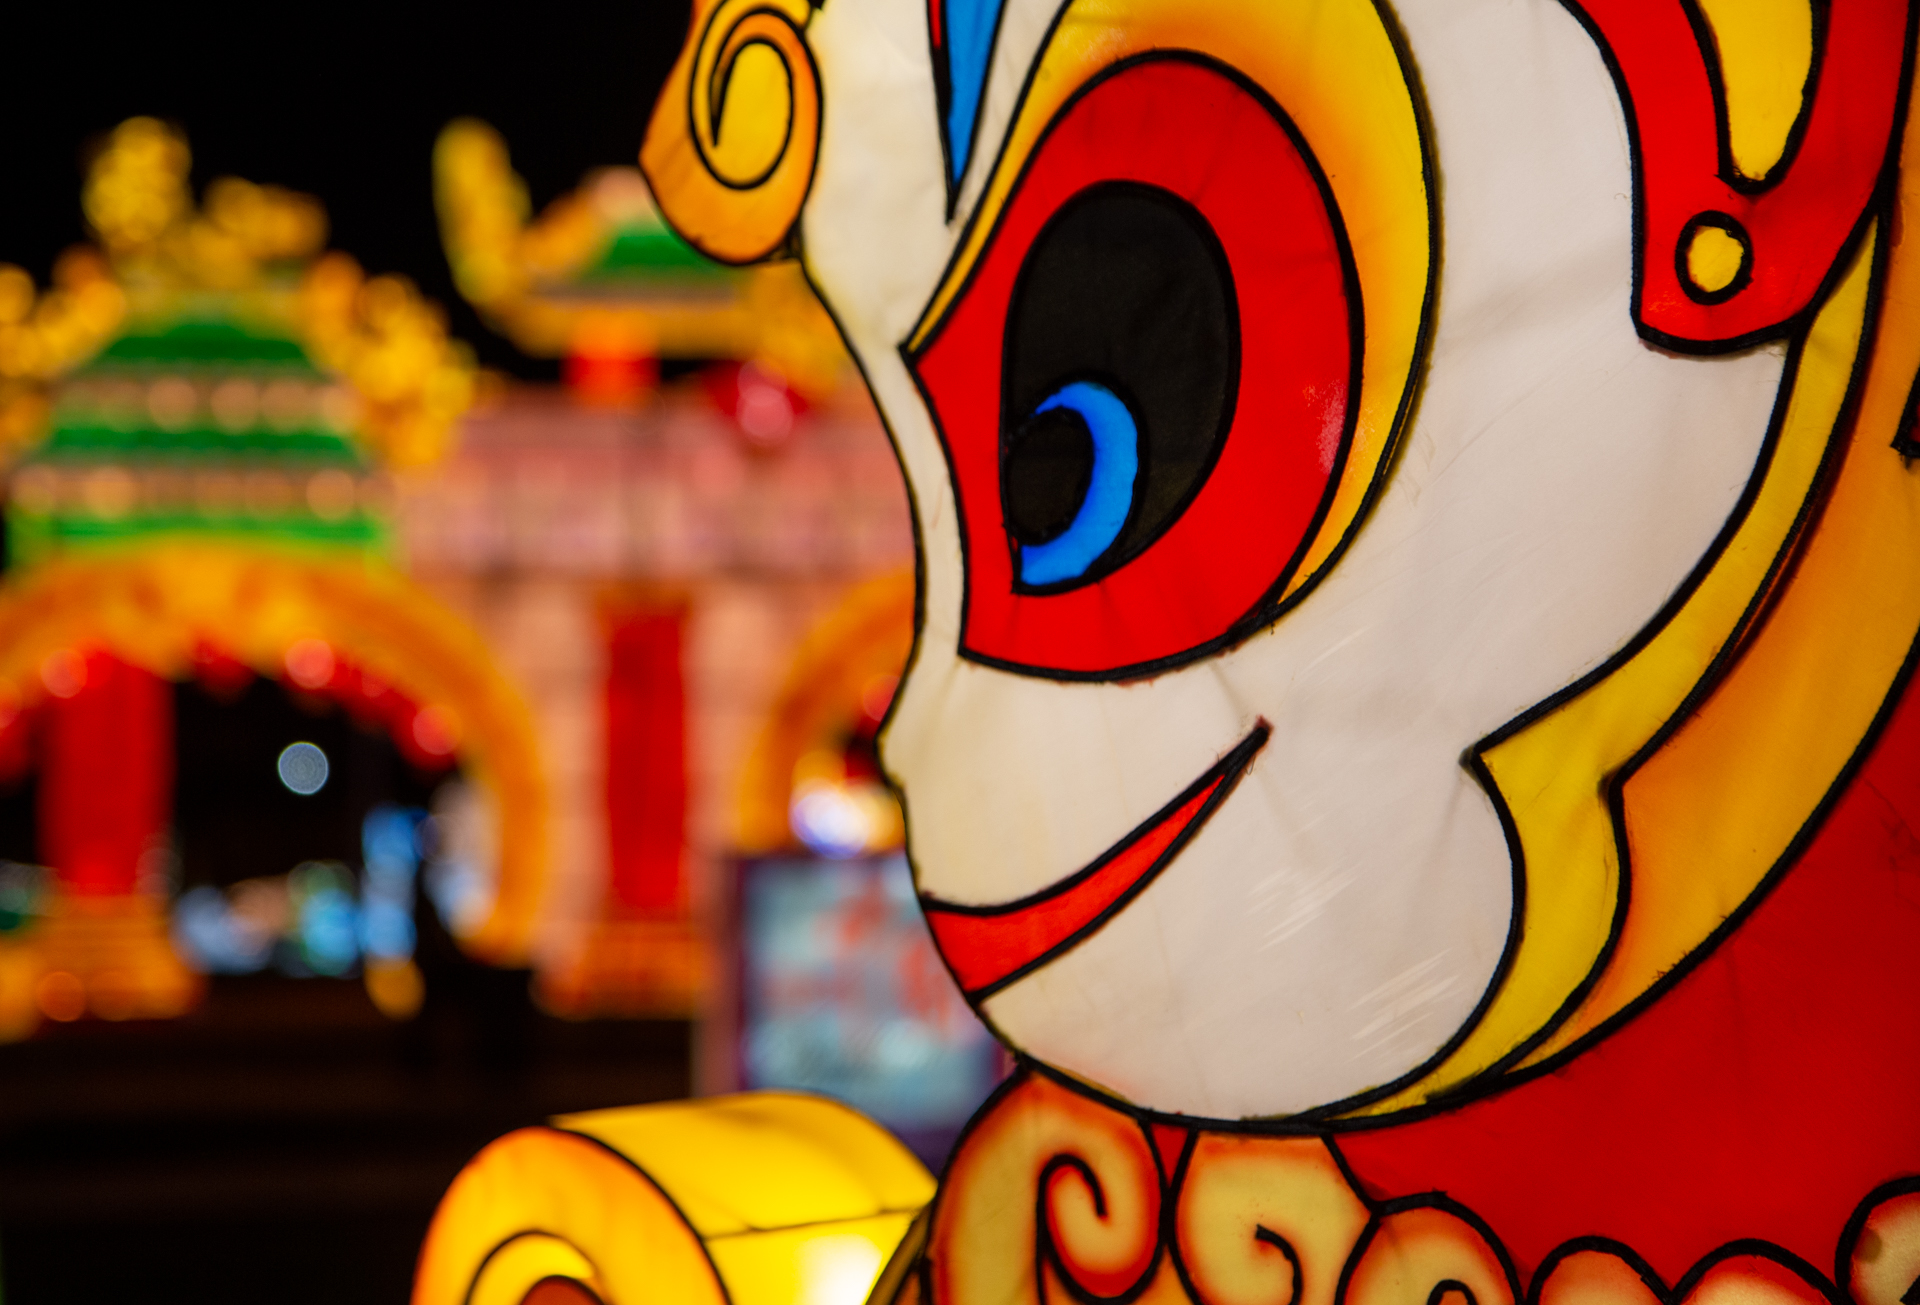 NYC Winter Lantern Festival 2019